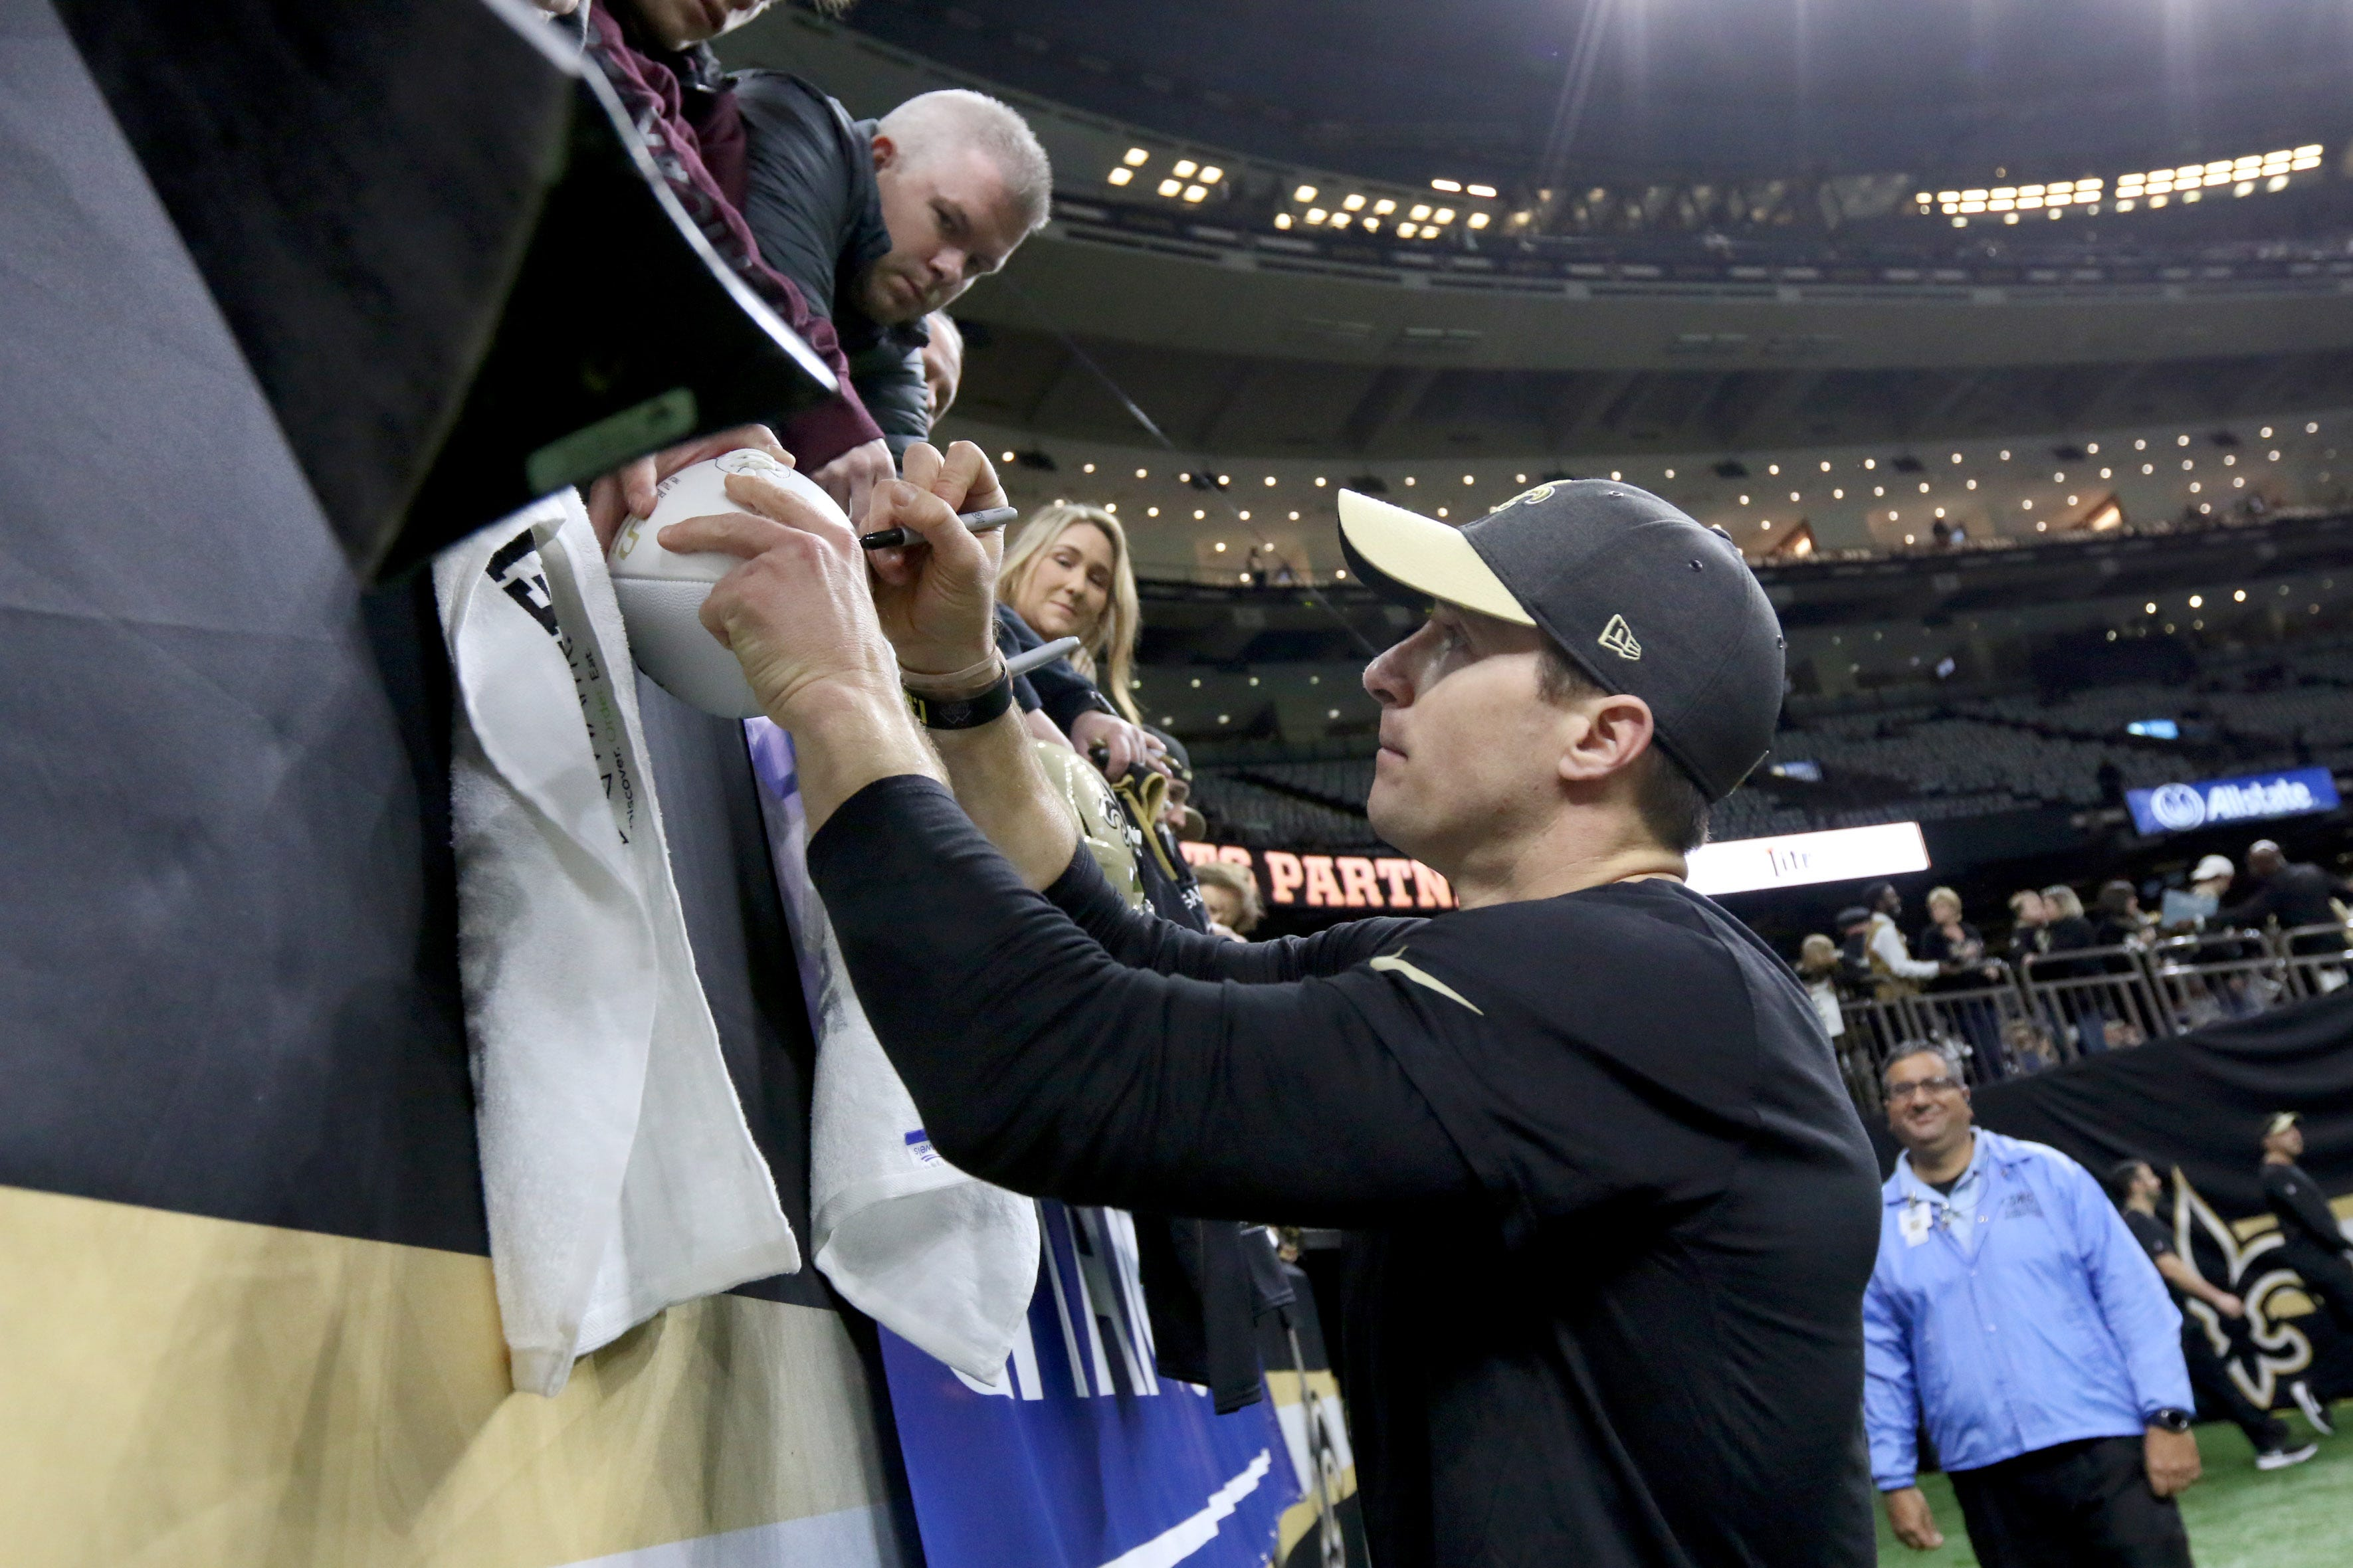 Drew Brees gives signed jersey to Zion Williamson with personal message